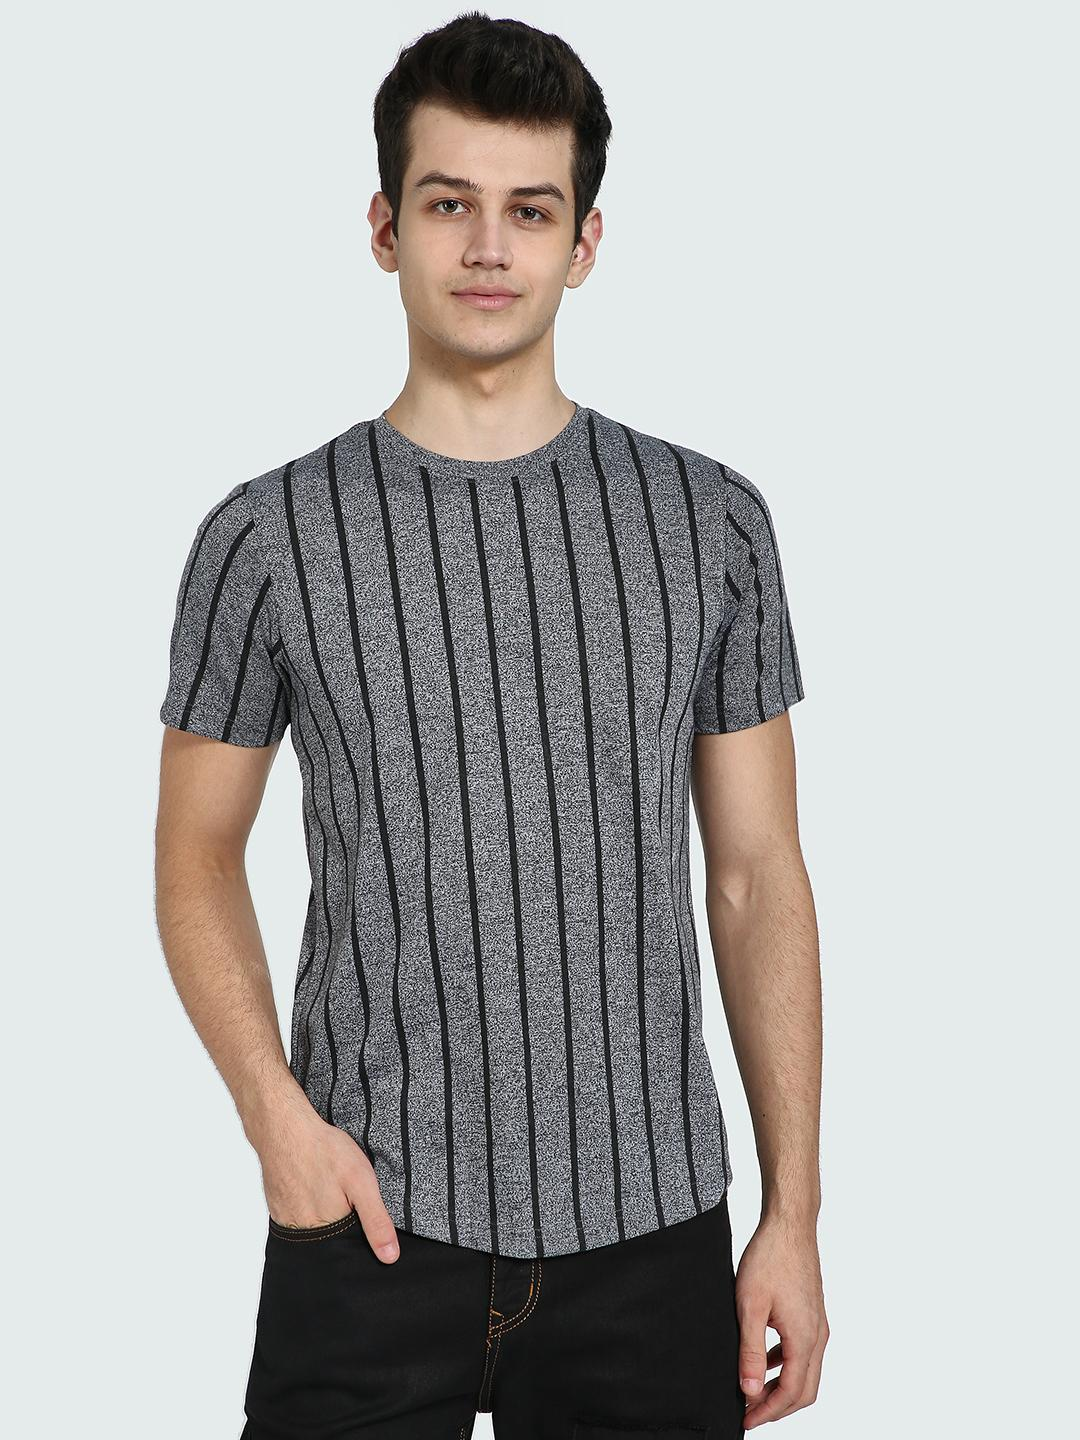 IMPACKT Grey Vertical Stripe Crew Neck T-Shirt 1